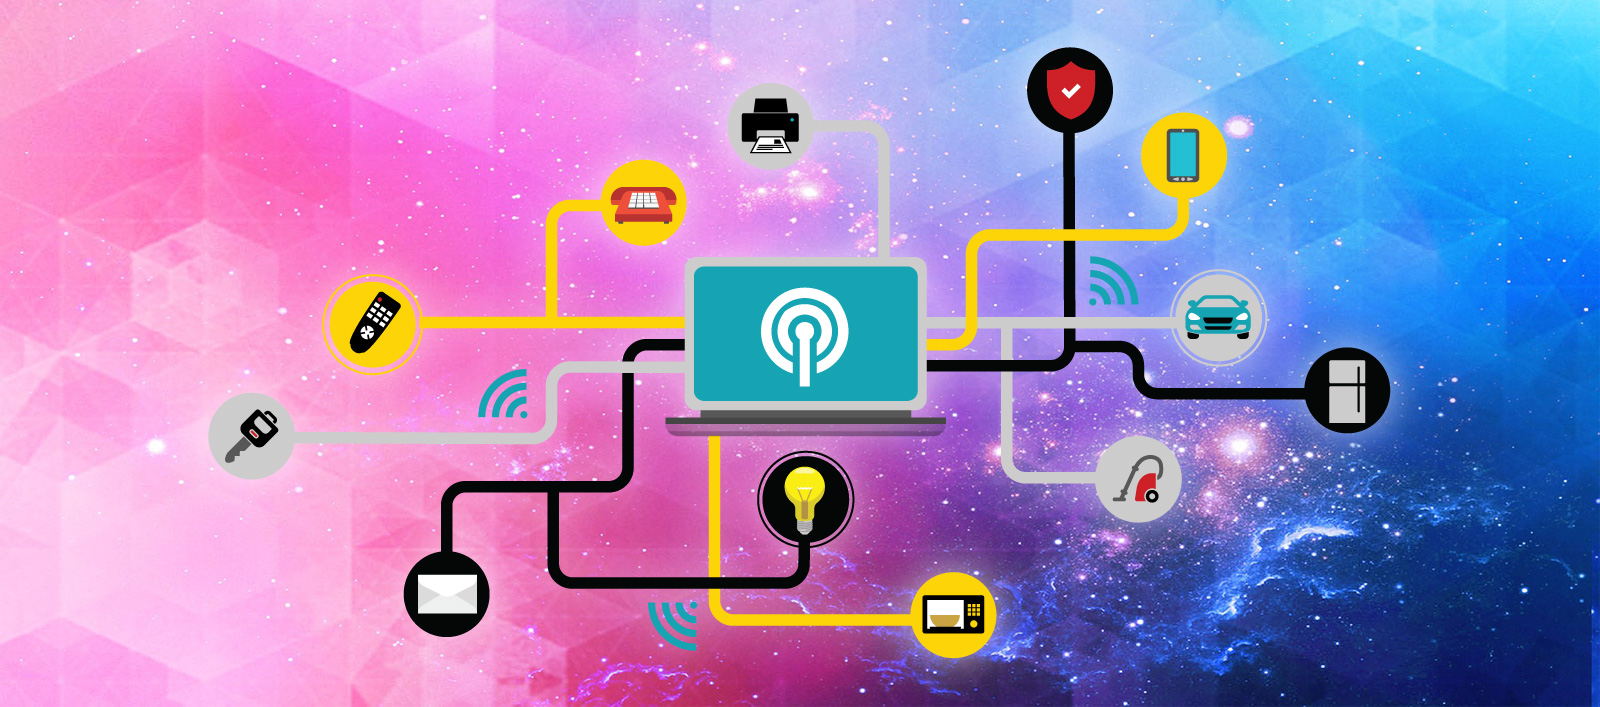 Security changes needed to protect corporate networks from non-business IoT devices